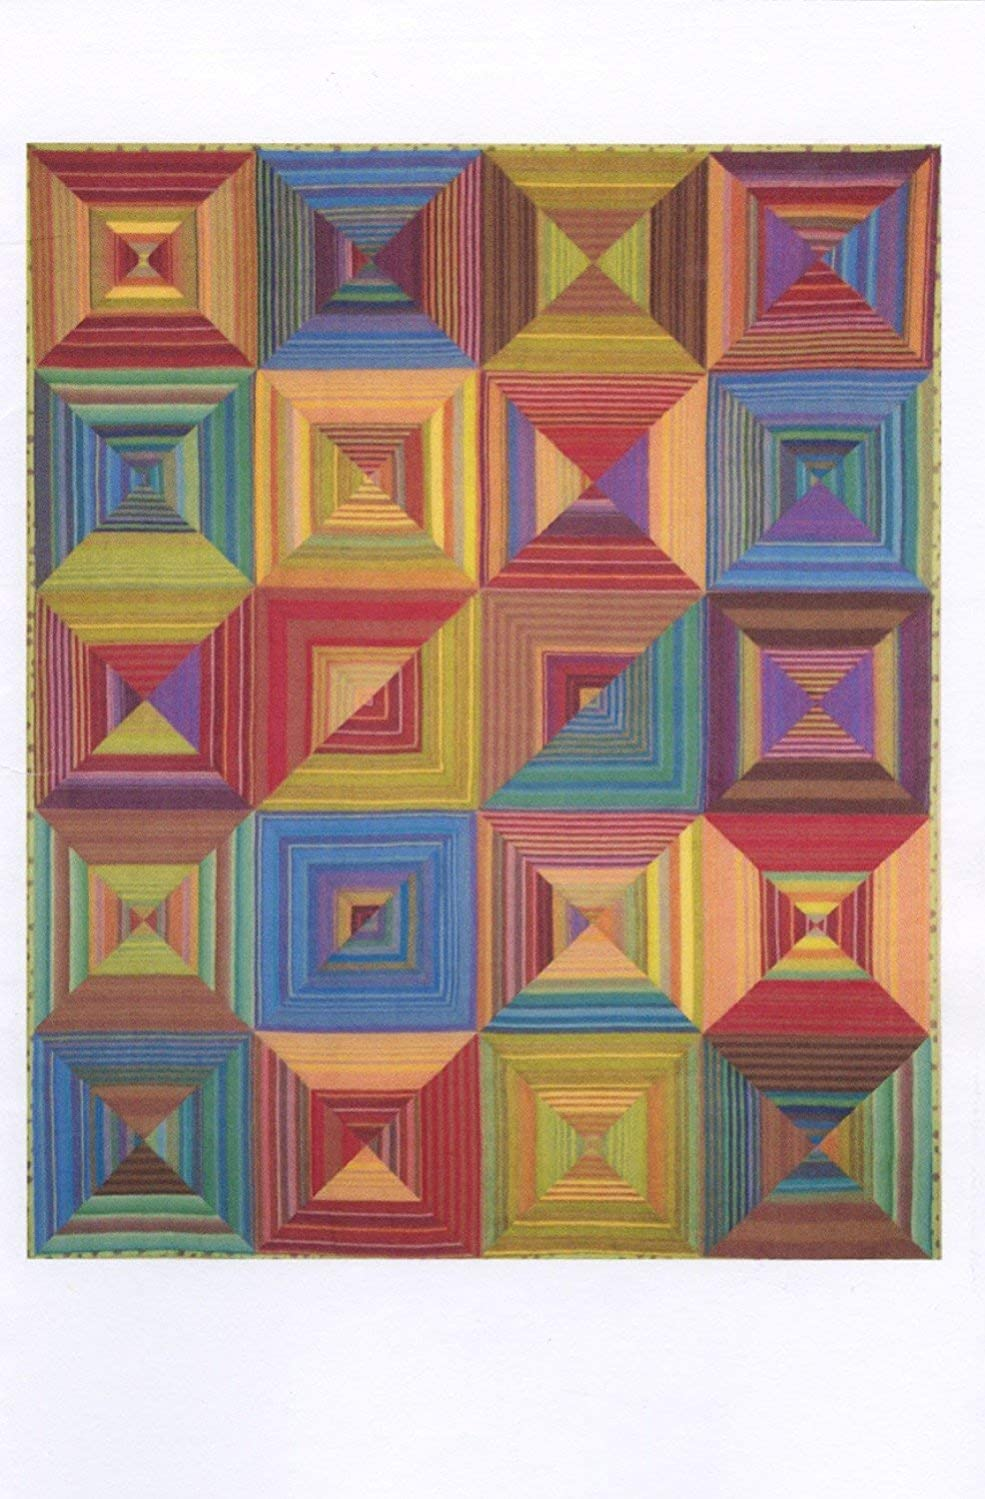 Stripes Squared Quilt Pattern by Aardvark Quilts - 4 sizes - AQ803